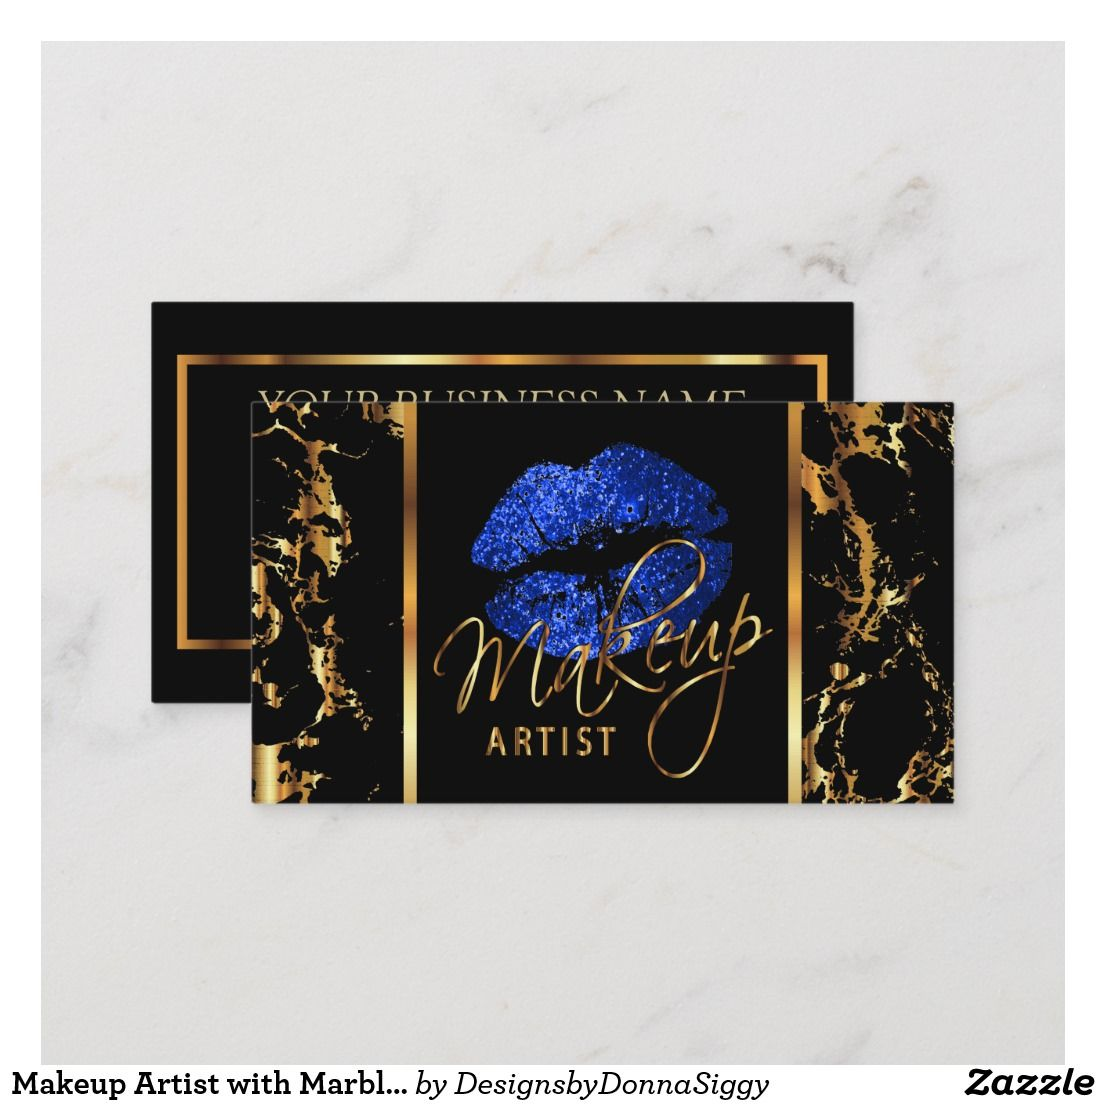 Makeup Artist with Marble Gold & Blue Accents Business